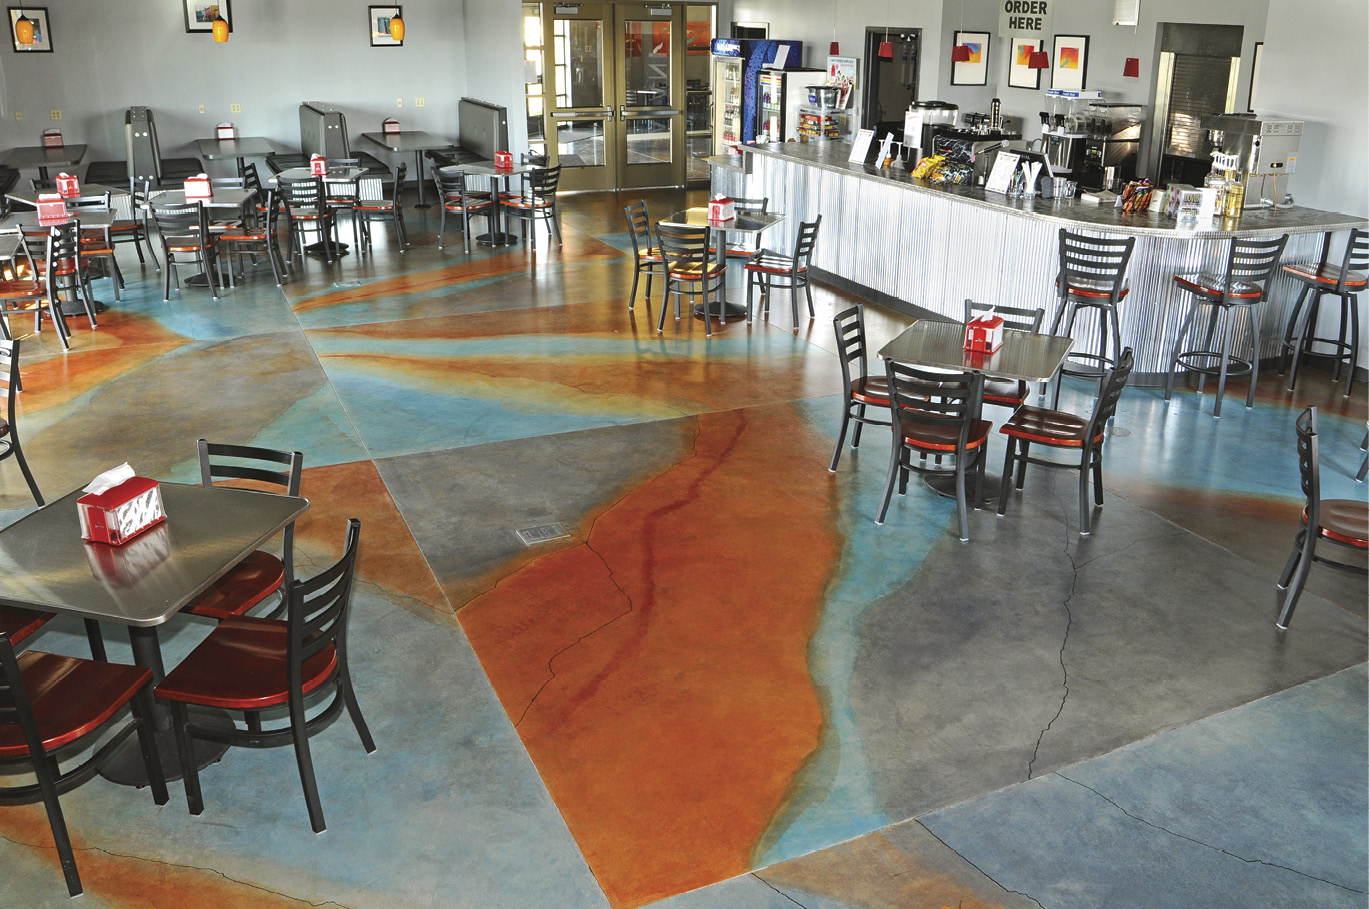 This restaurant floor, done in ARTesian Water-Based Stains, showcases both the durability of the product and the wide range of colors available. The compass below displays the colorful hues in more muted tones.